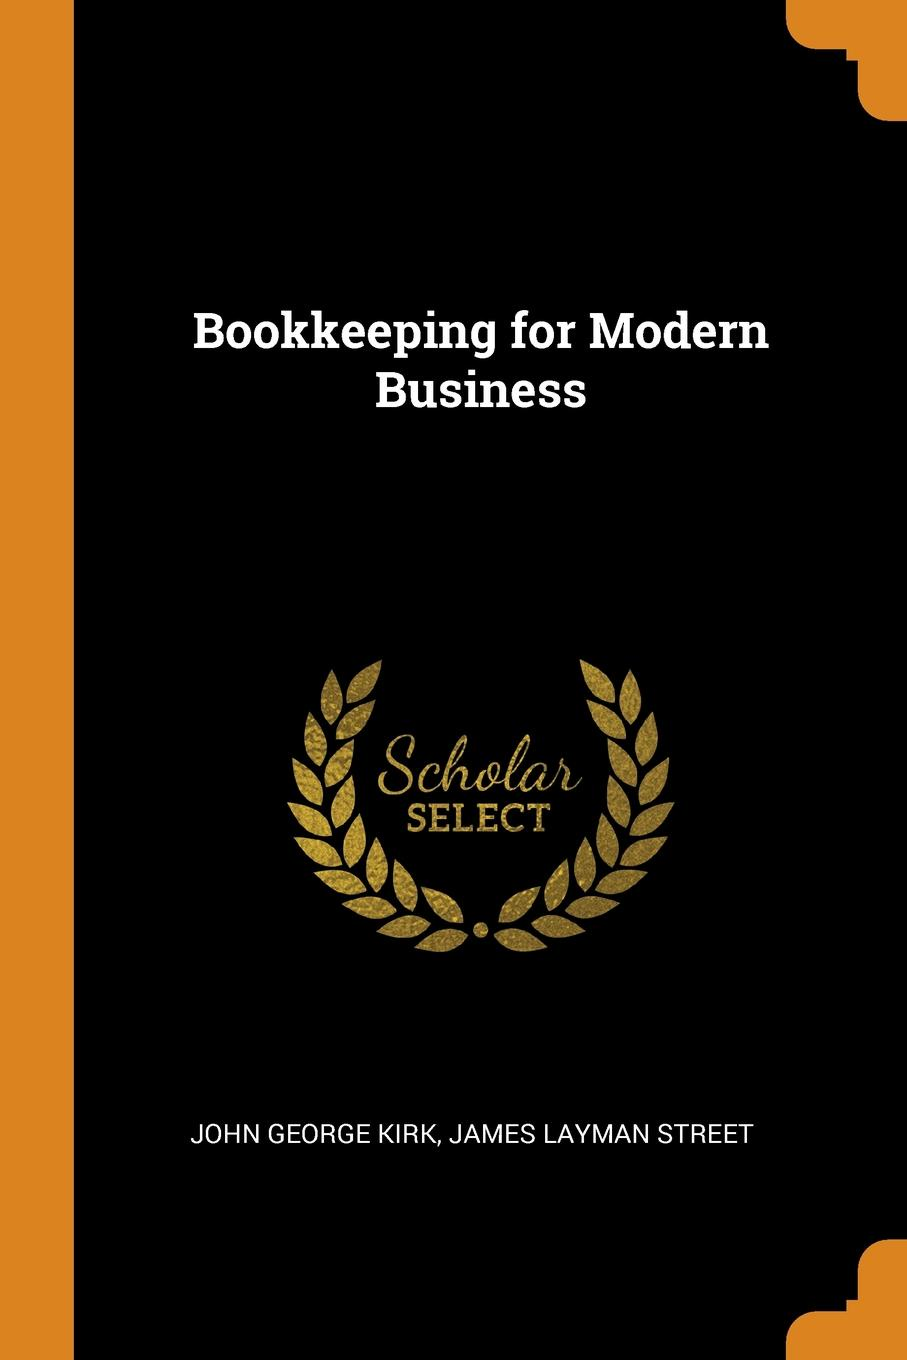 Bookkeeping for Modern Business